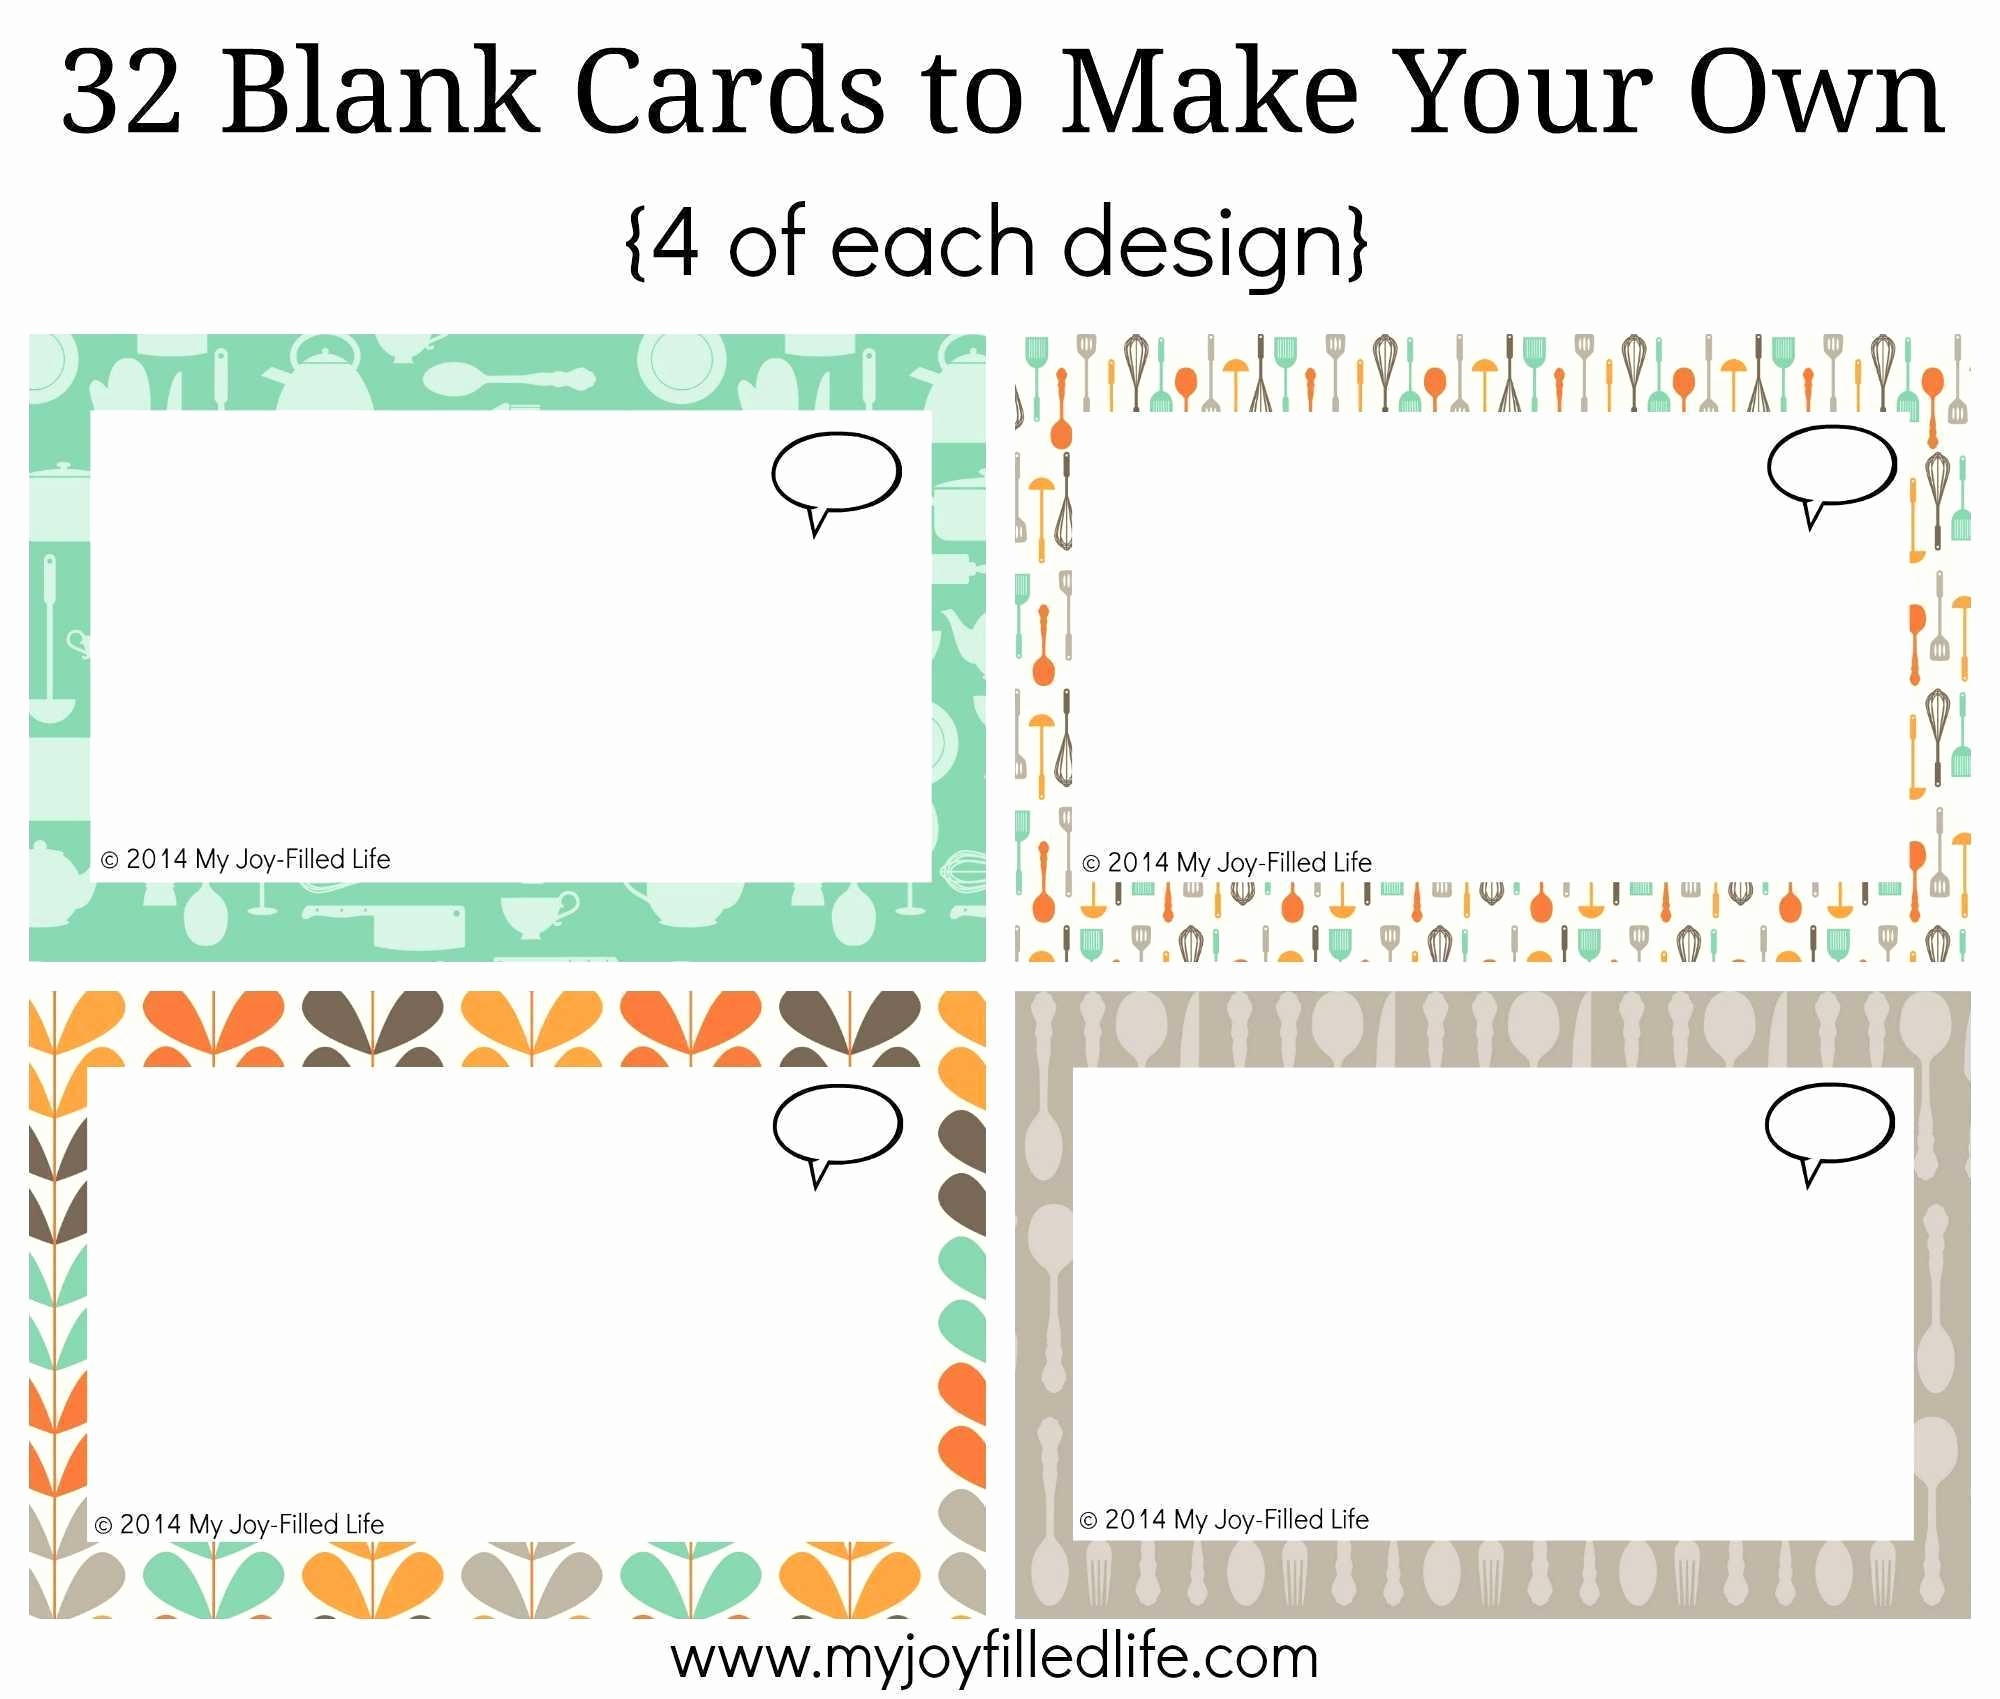 20 Make Free Business Cards Online Printable – Guiaubuntupt - Make Your Own Business Cards Free Printable